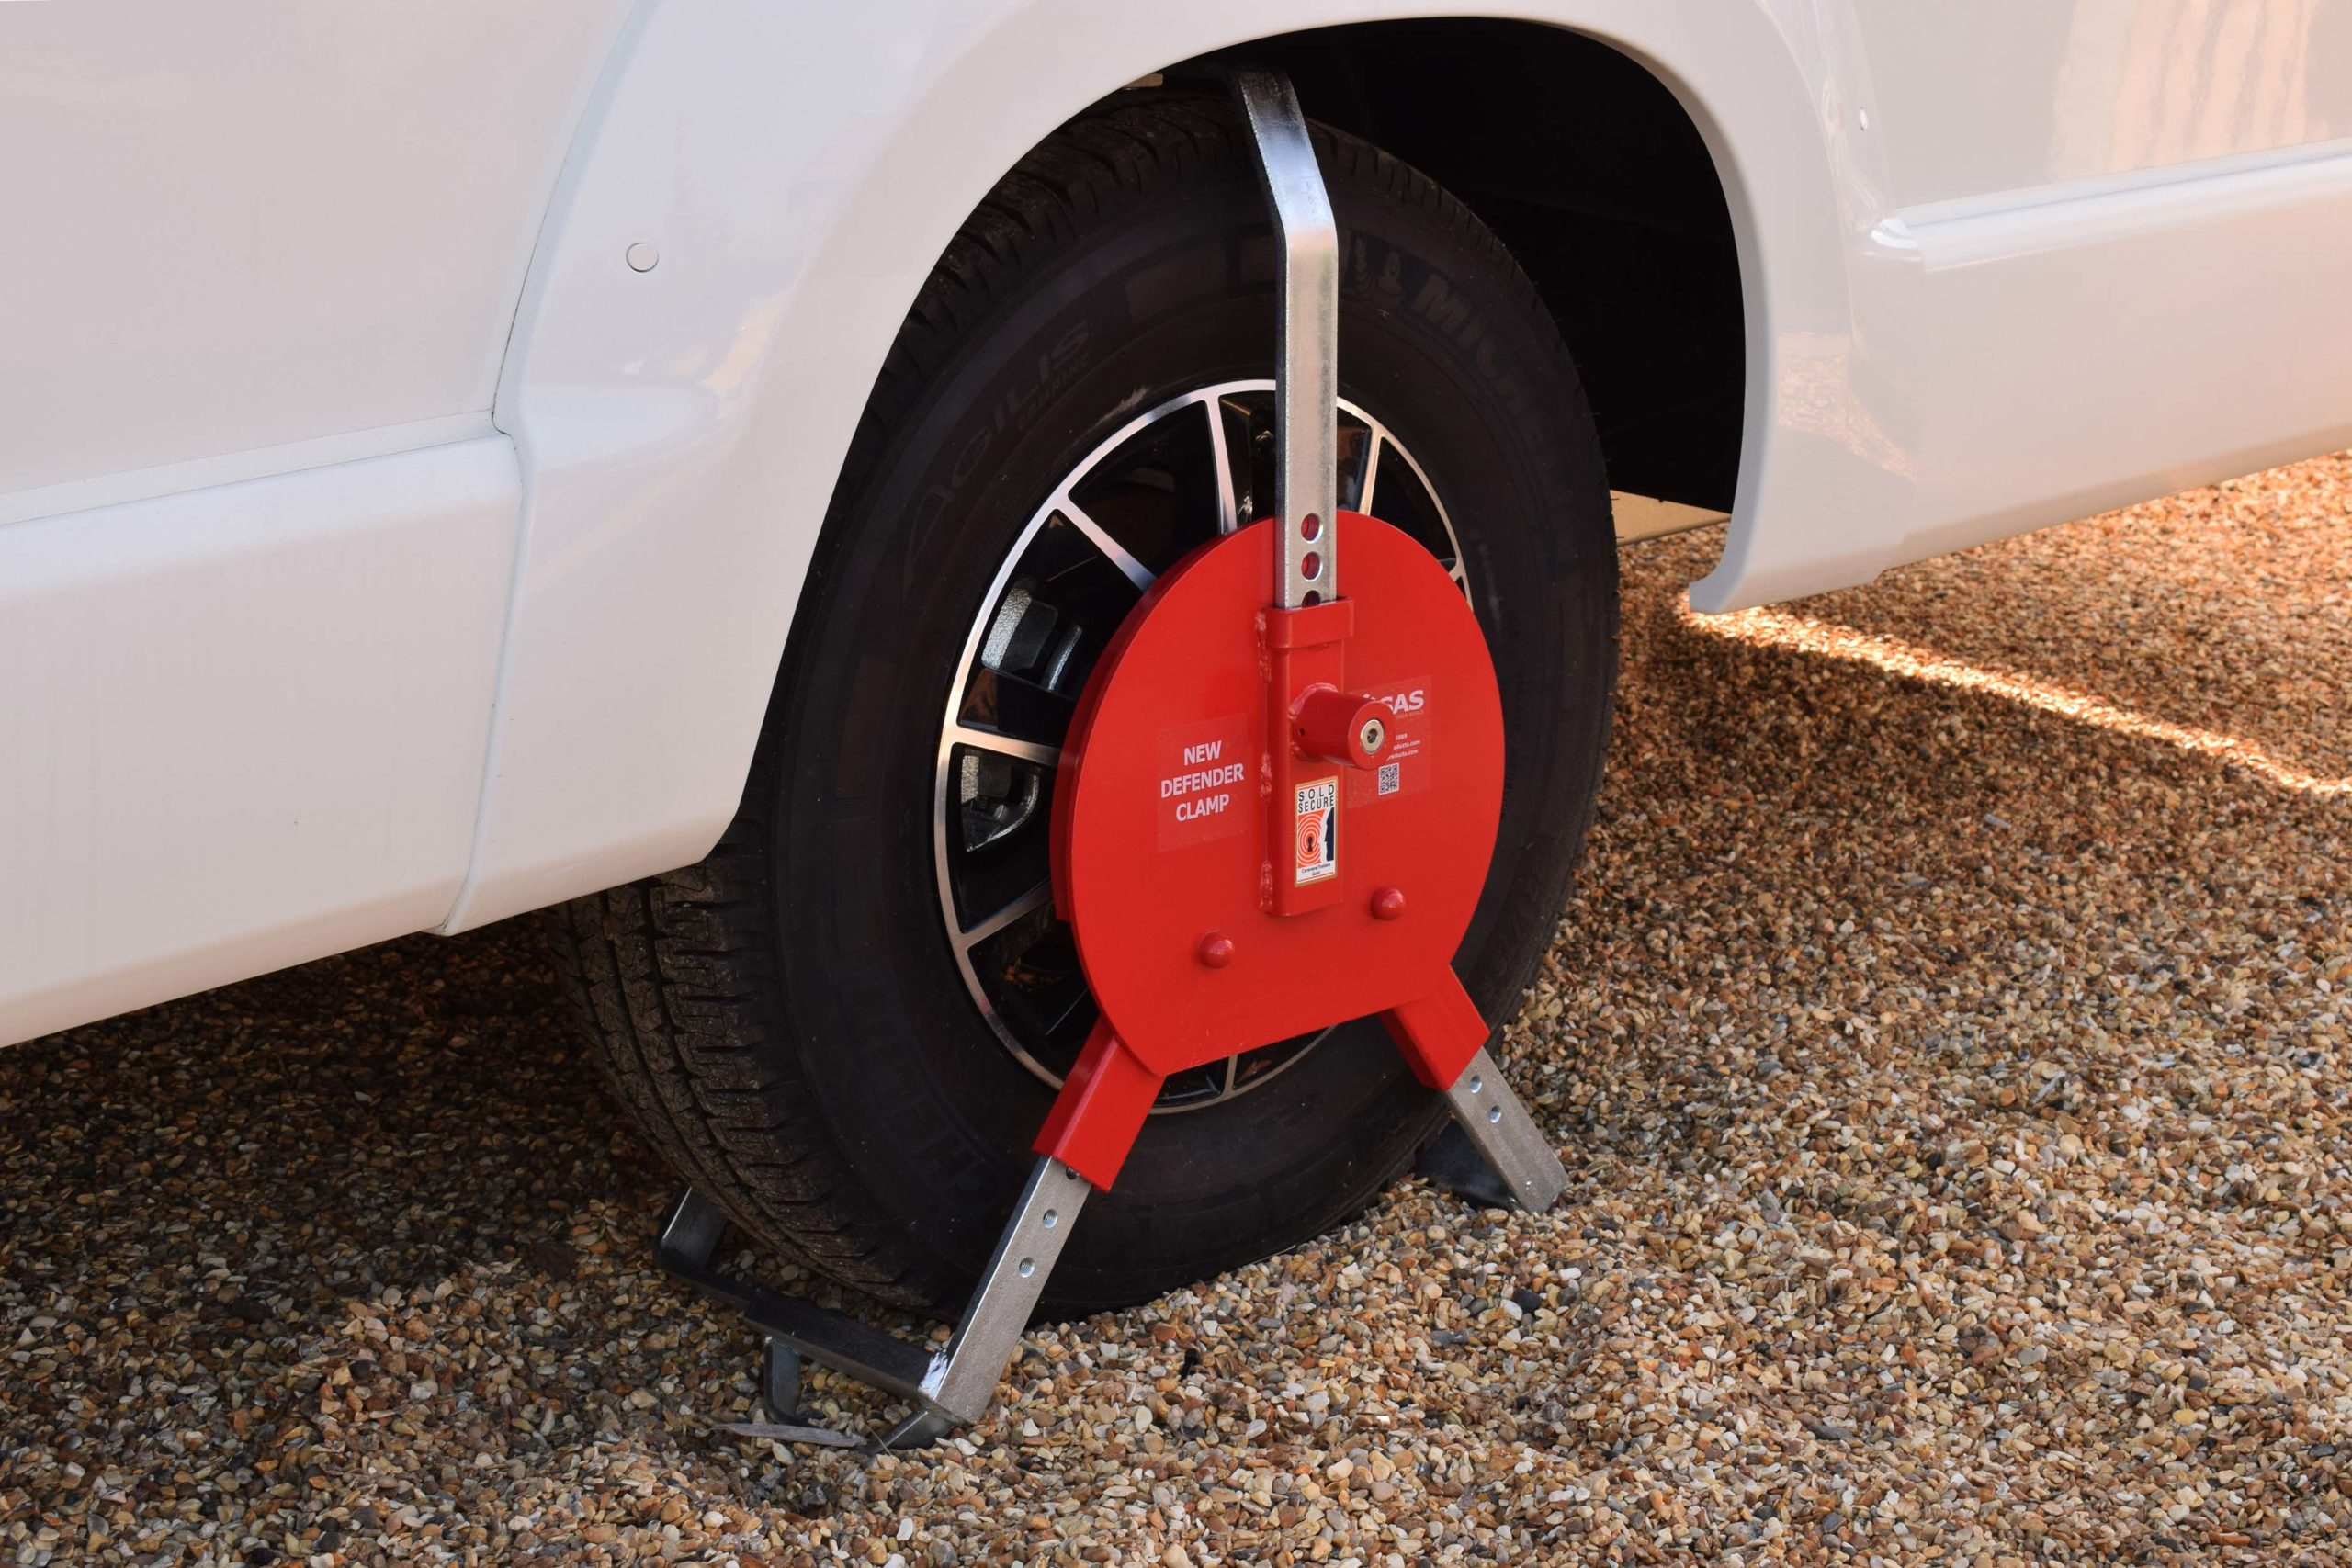 New Defender Wheel Clamp Range